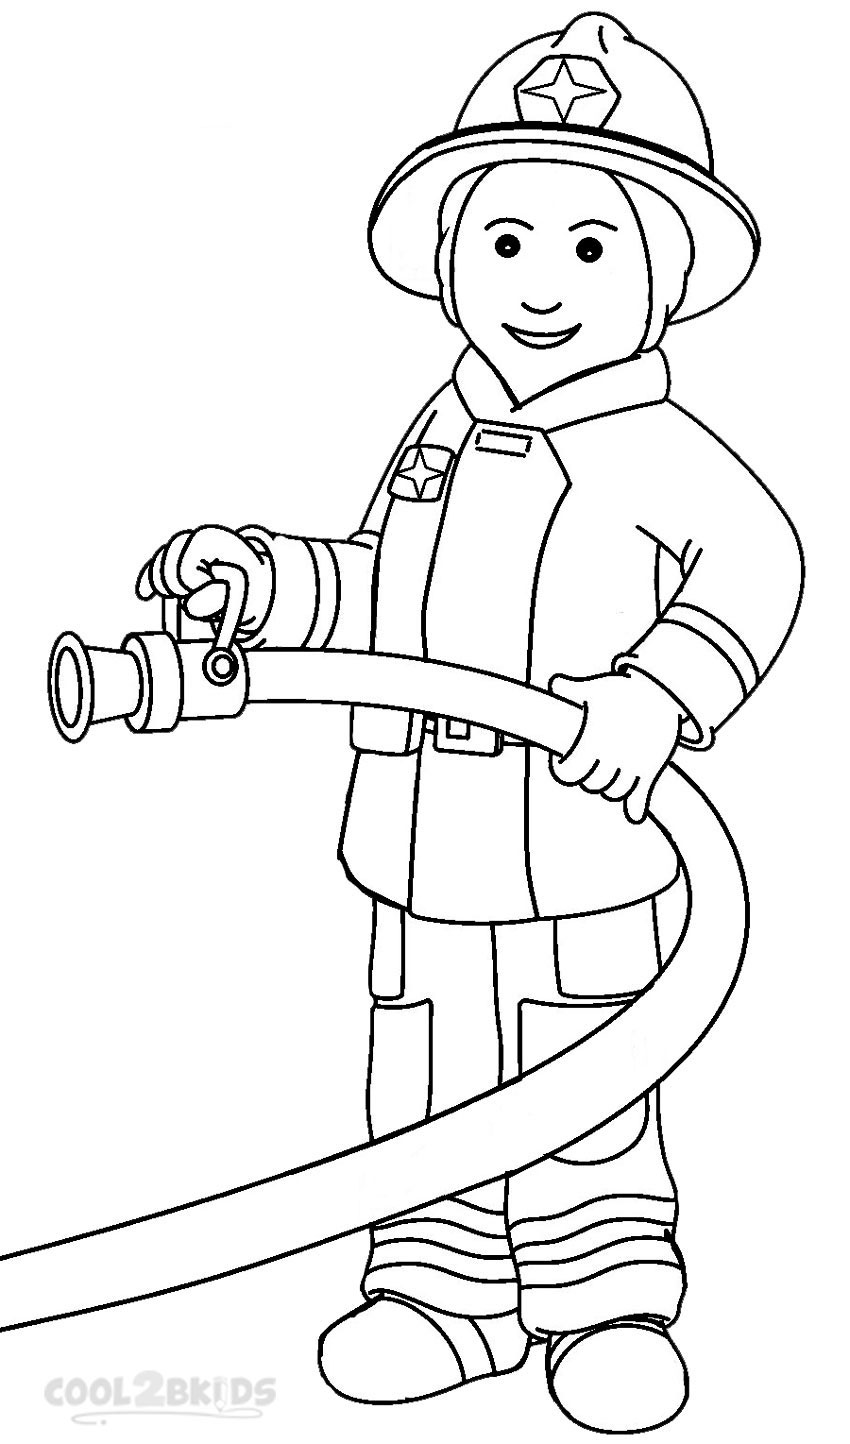 fire man coloring pages - photo#2